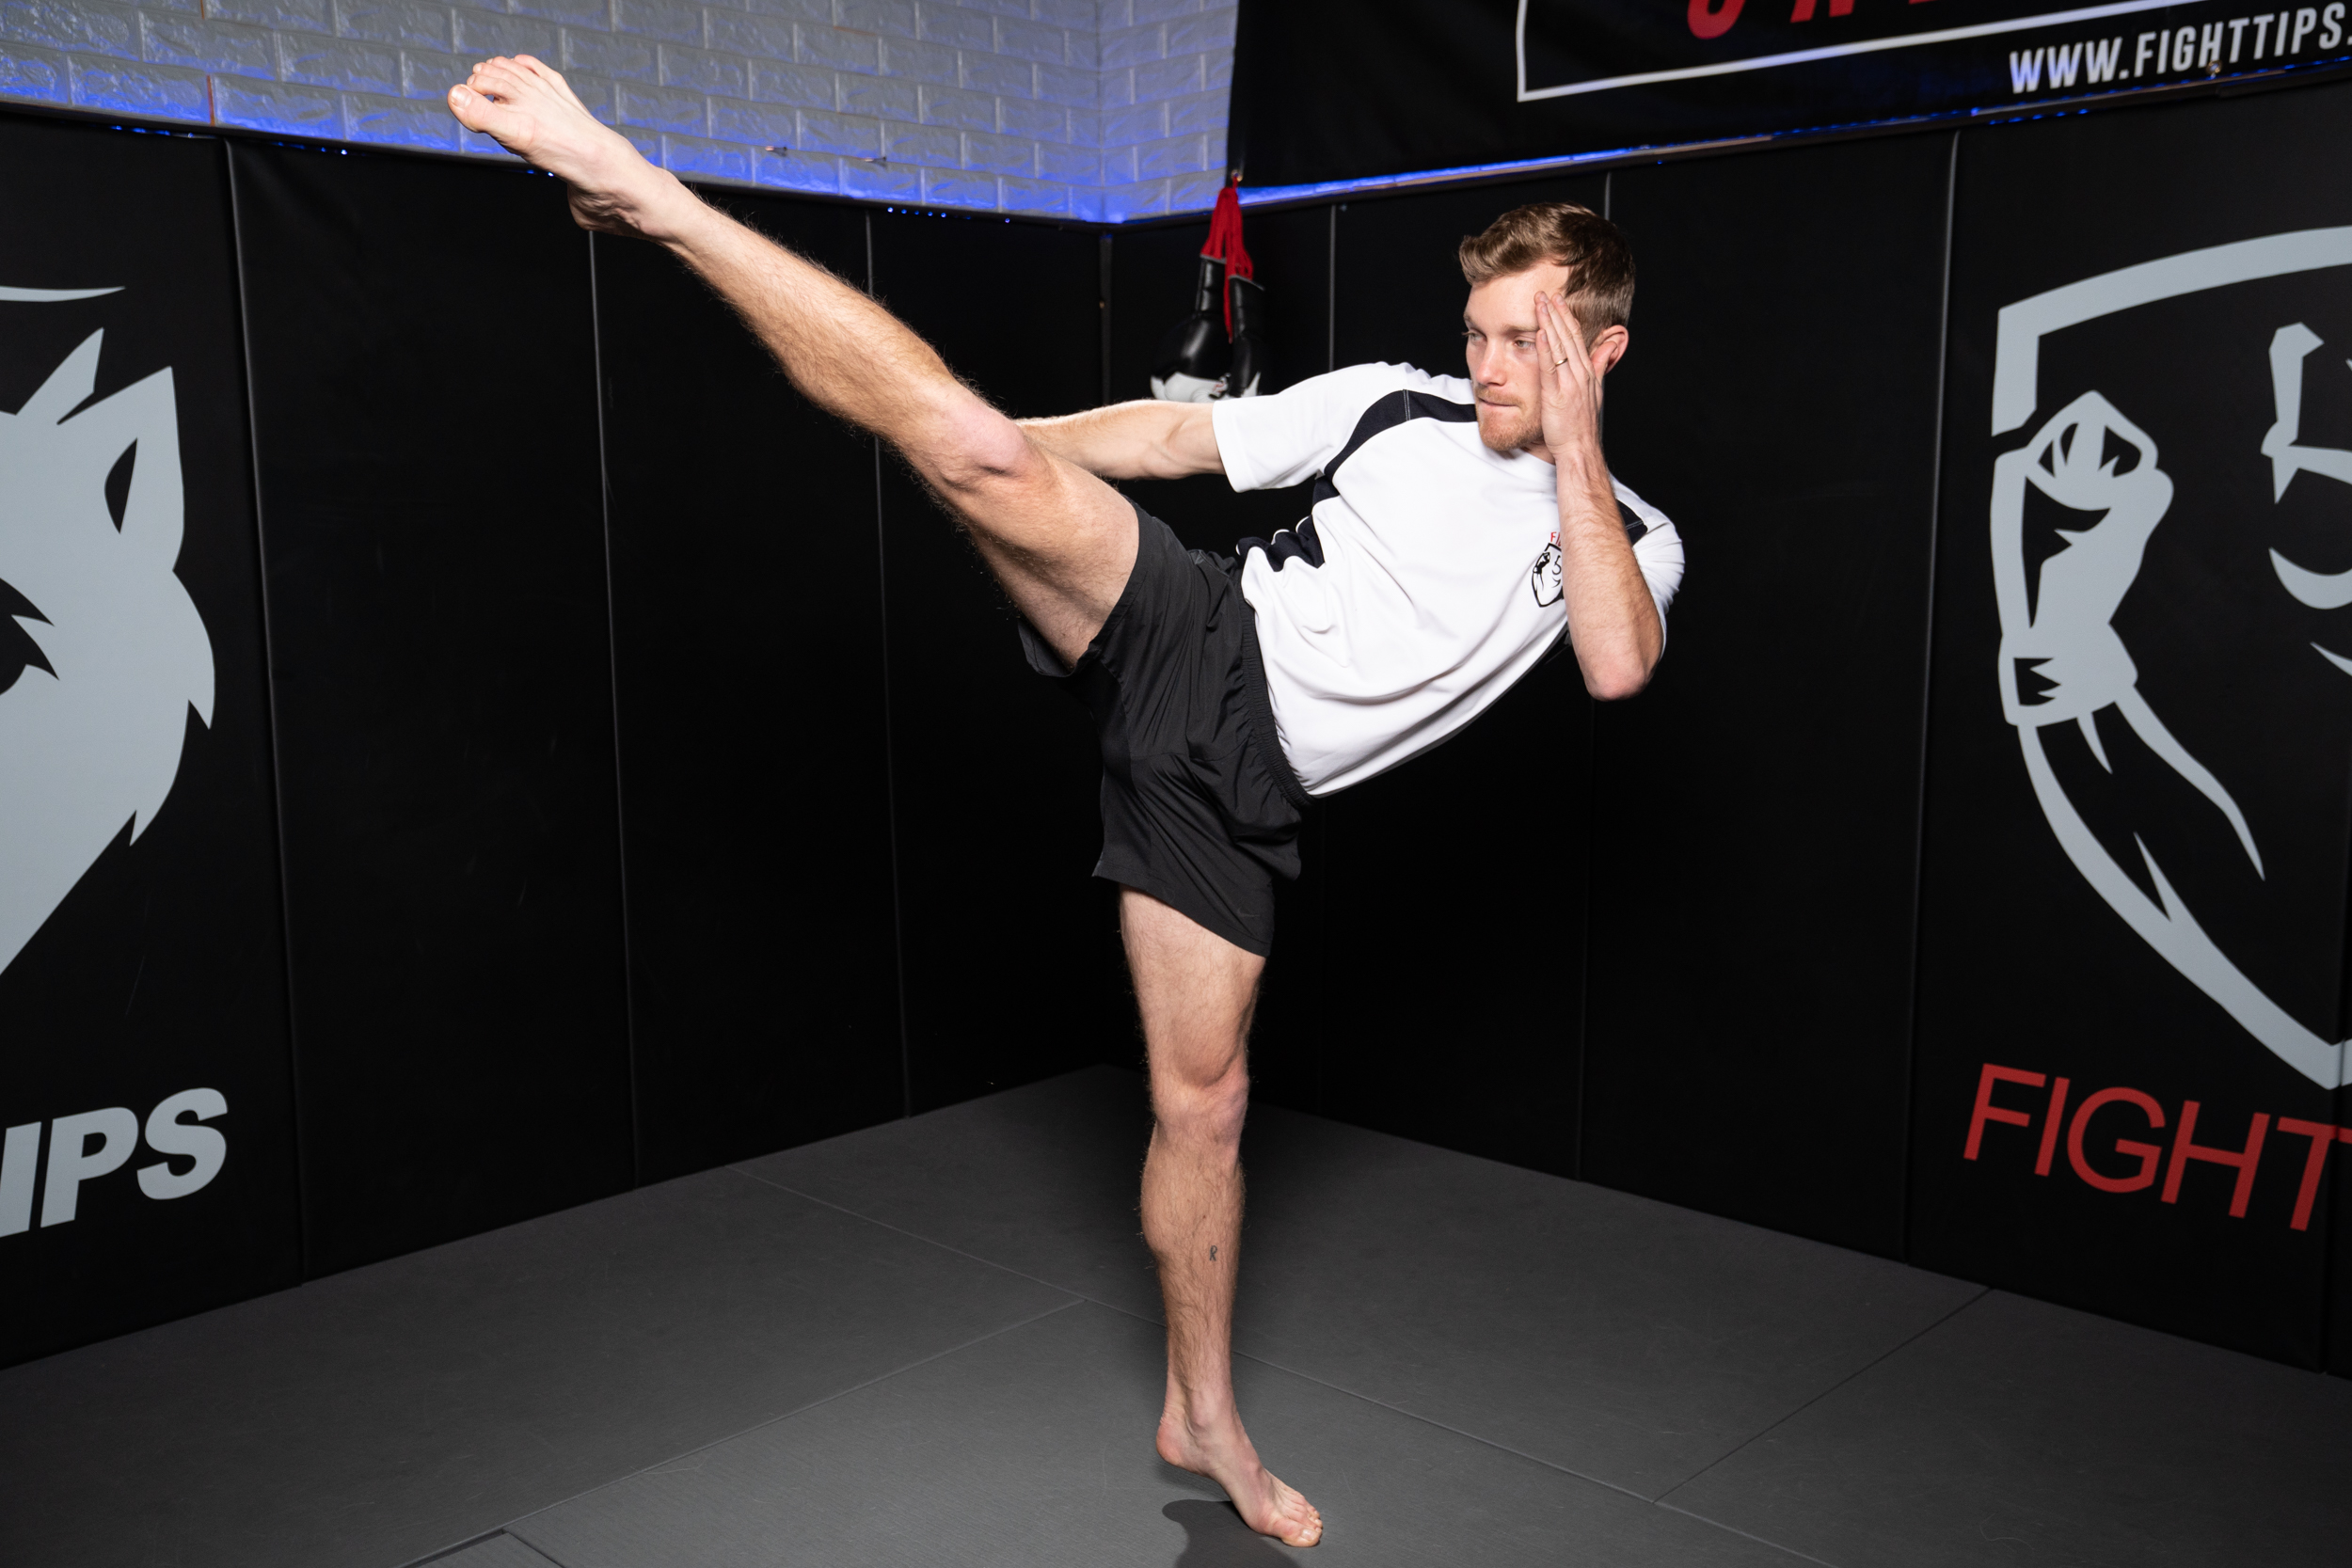 Solo MMA Workouts